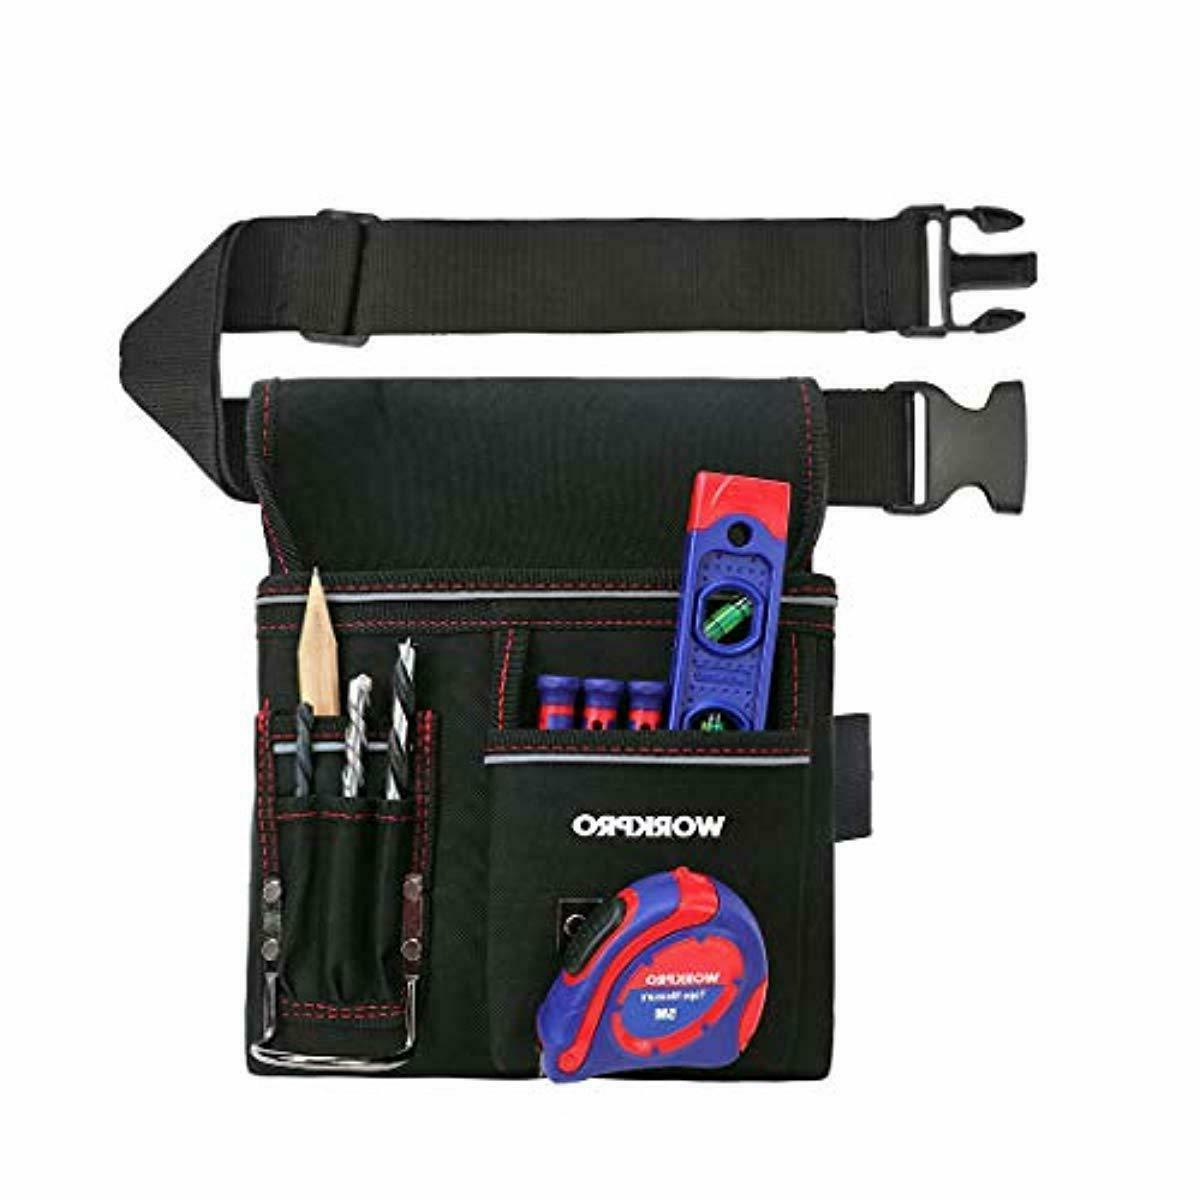 WORKPRO Tool Pouch Woodworking Included